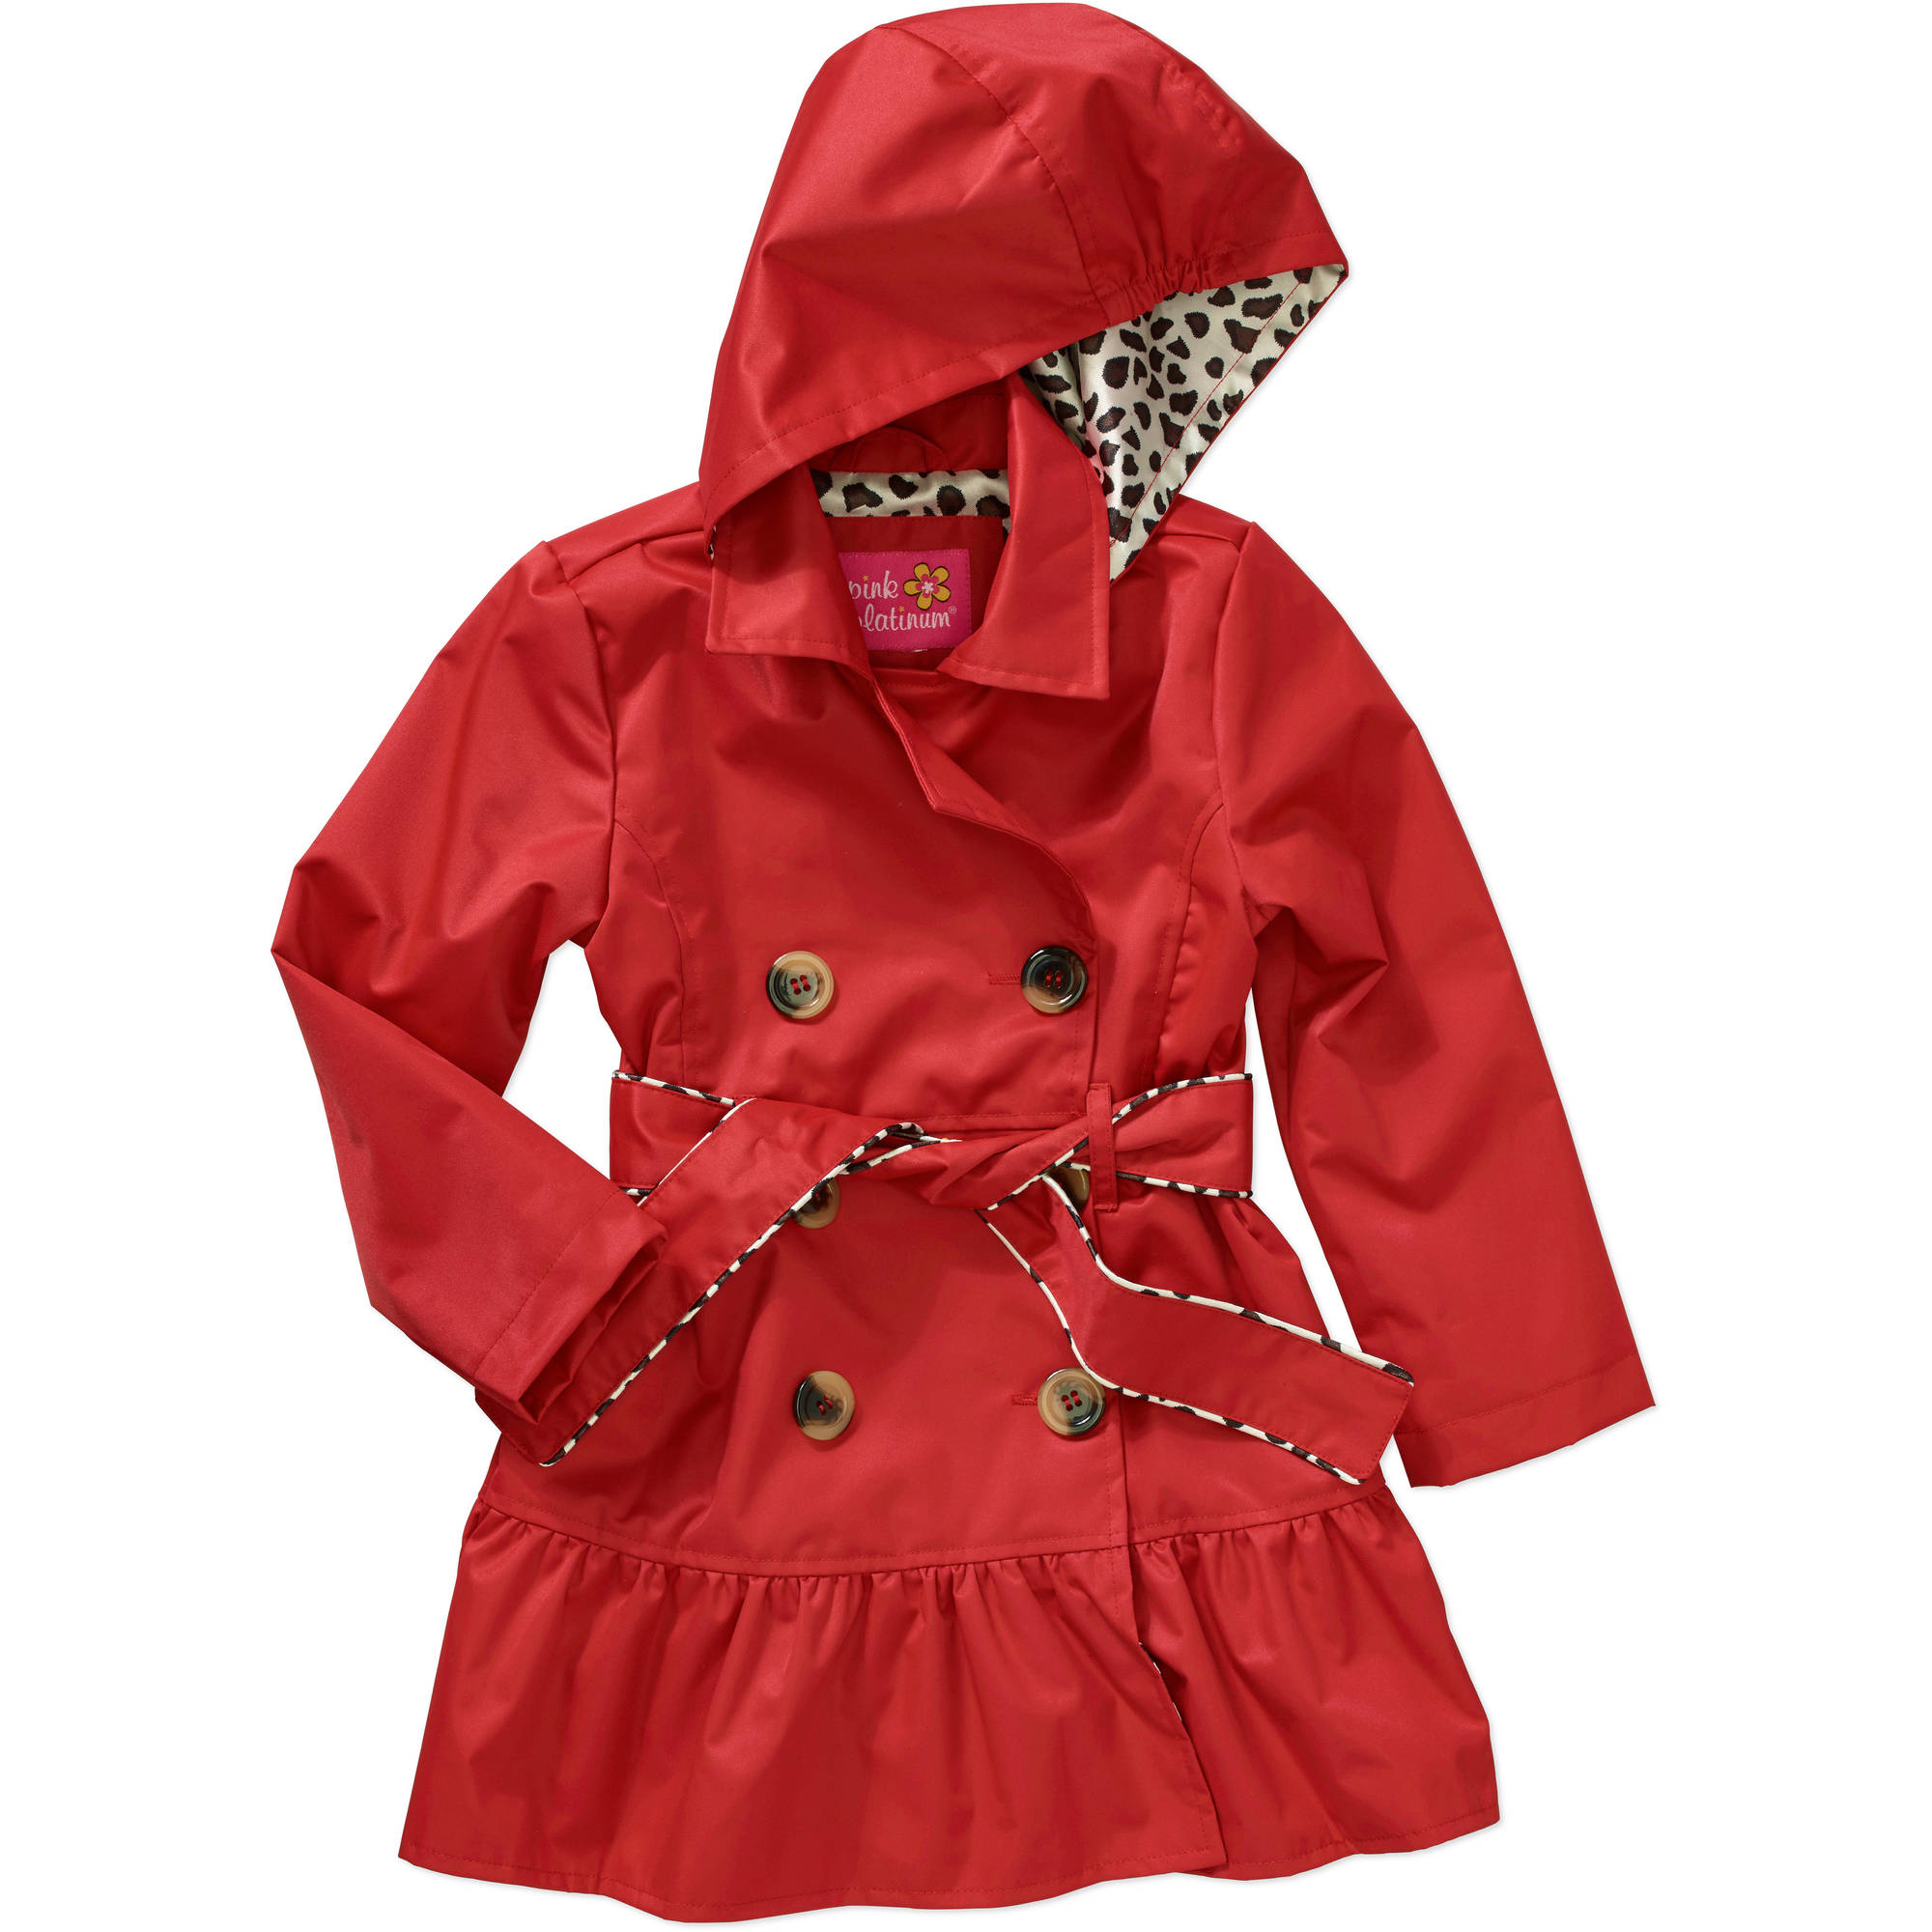 Pink Platinum Toddler Girl Tie Waist Ruffled Lined Lightweight Trenchcoat Jacket